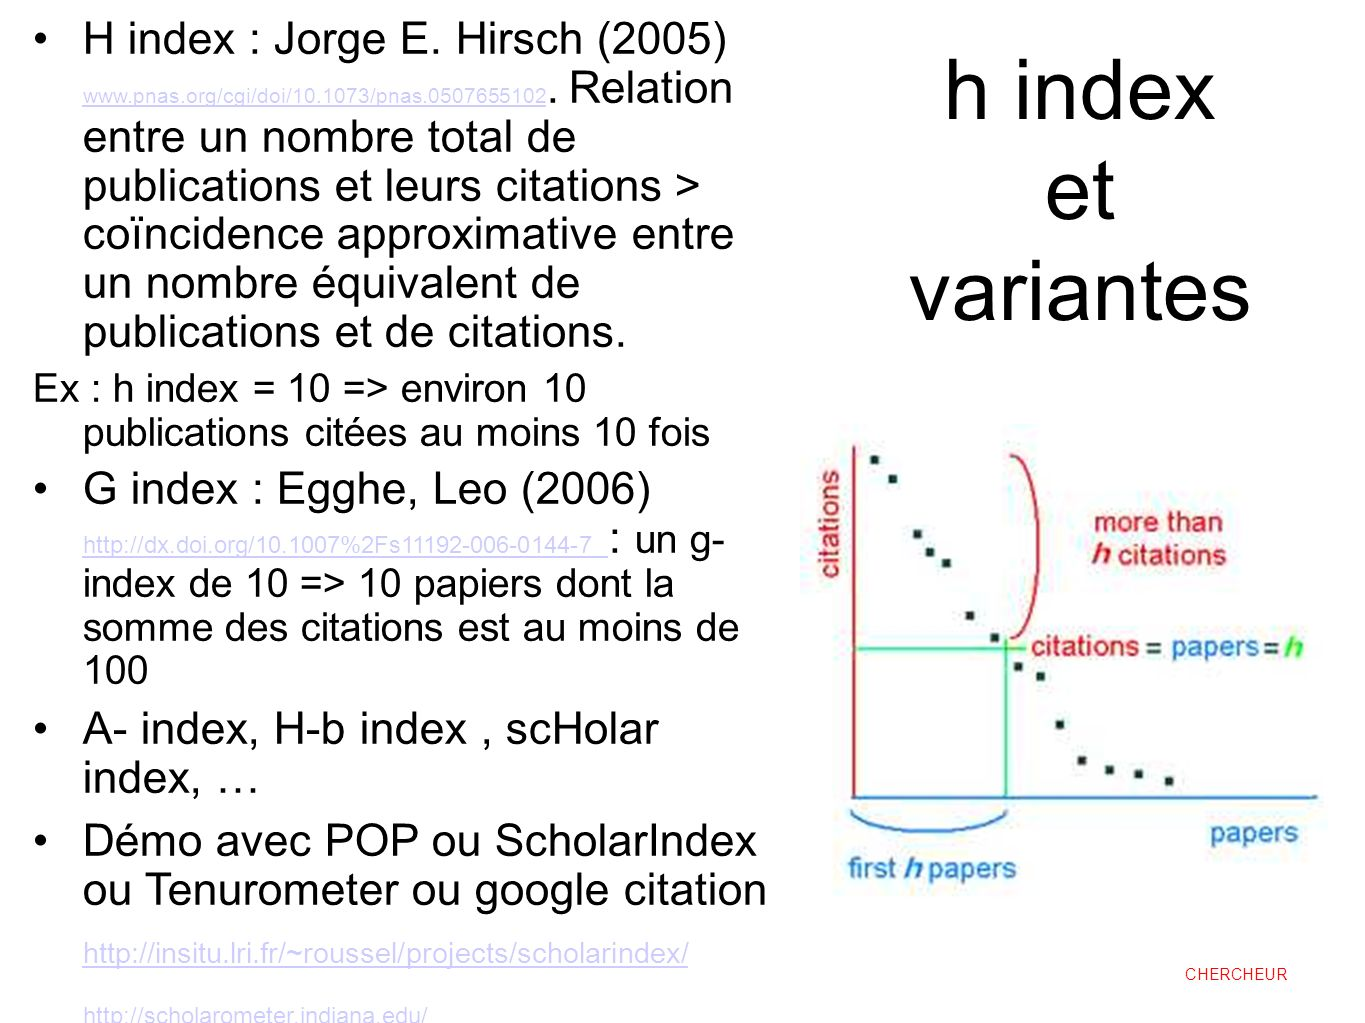 H index : Jorge E. Hirsch (2005) www. pnas. org/cgi/doi/10. 1073/pnas